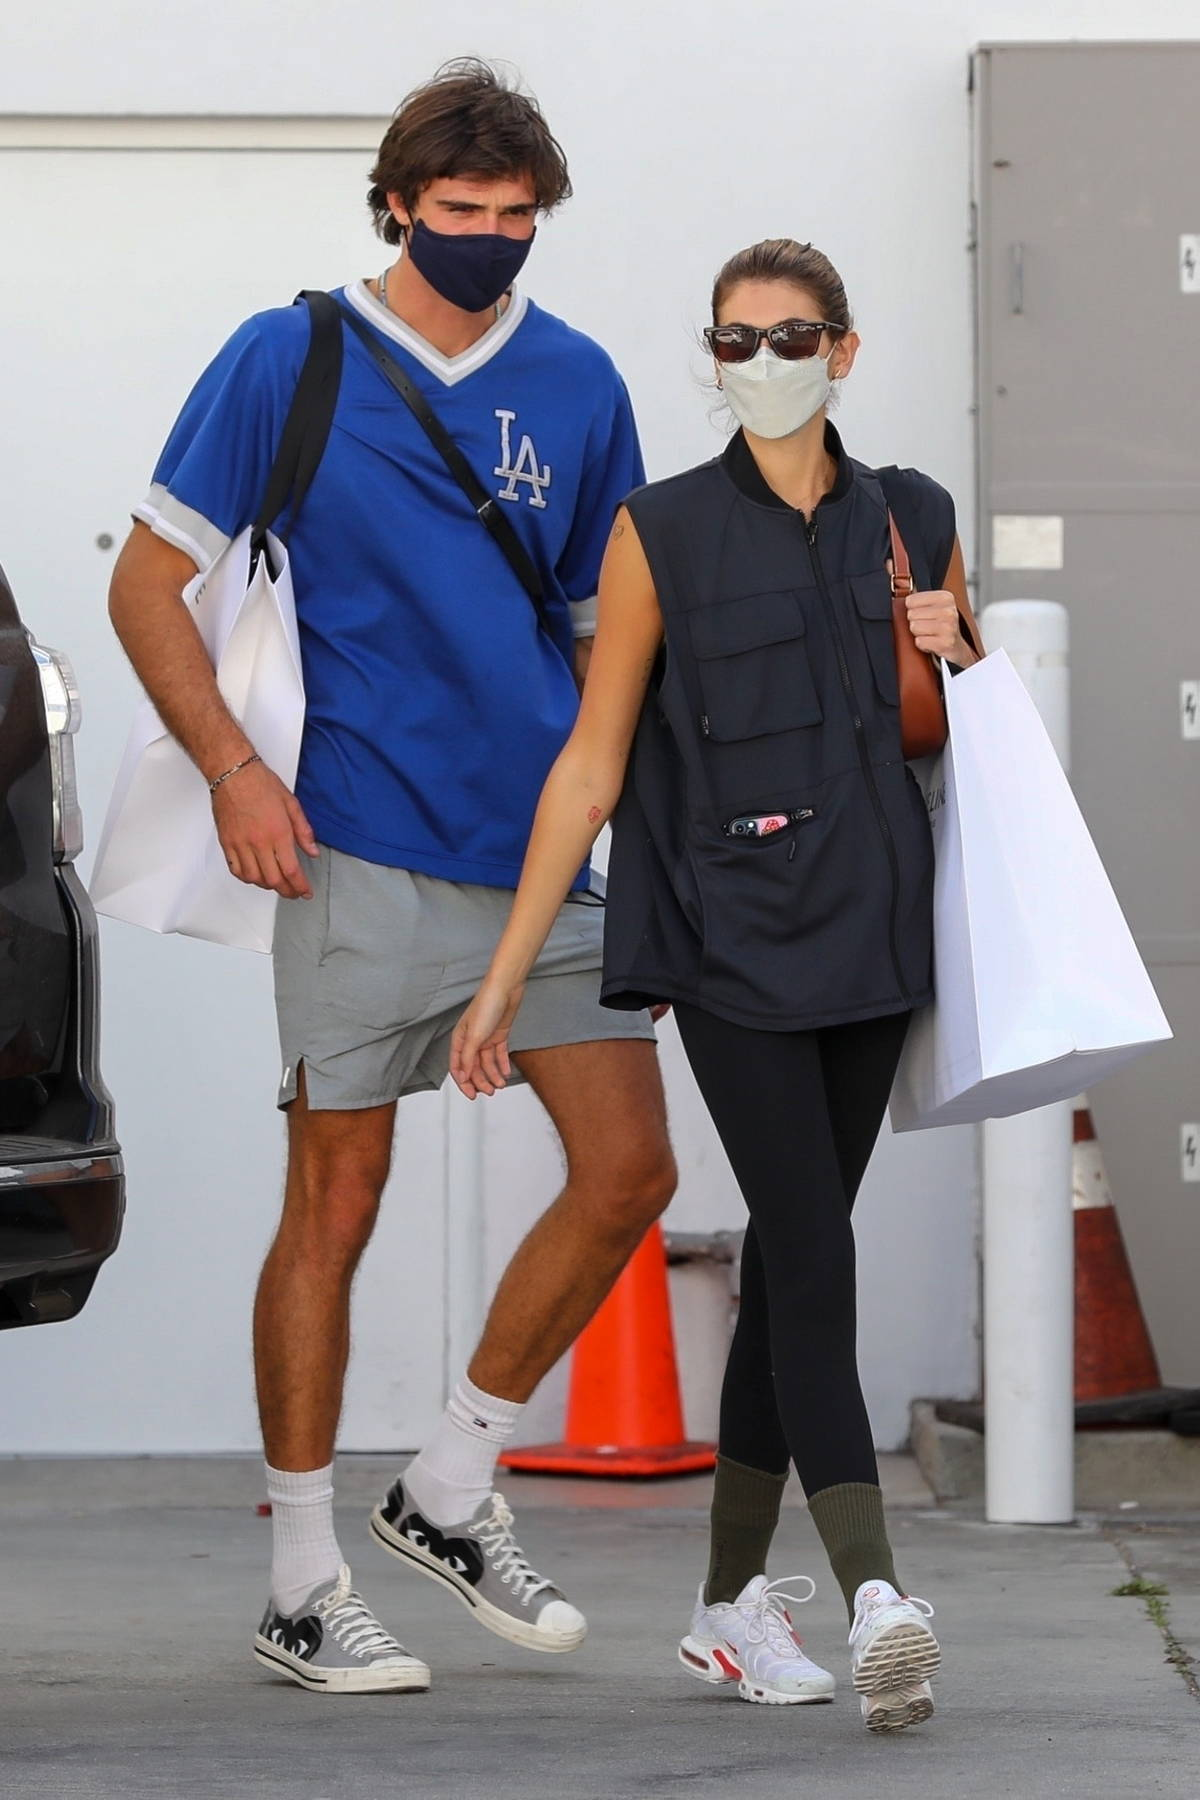 Kaia Gerber and Jacob Elordi return to their car after shopping at Celine in Beverly Hills, California